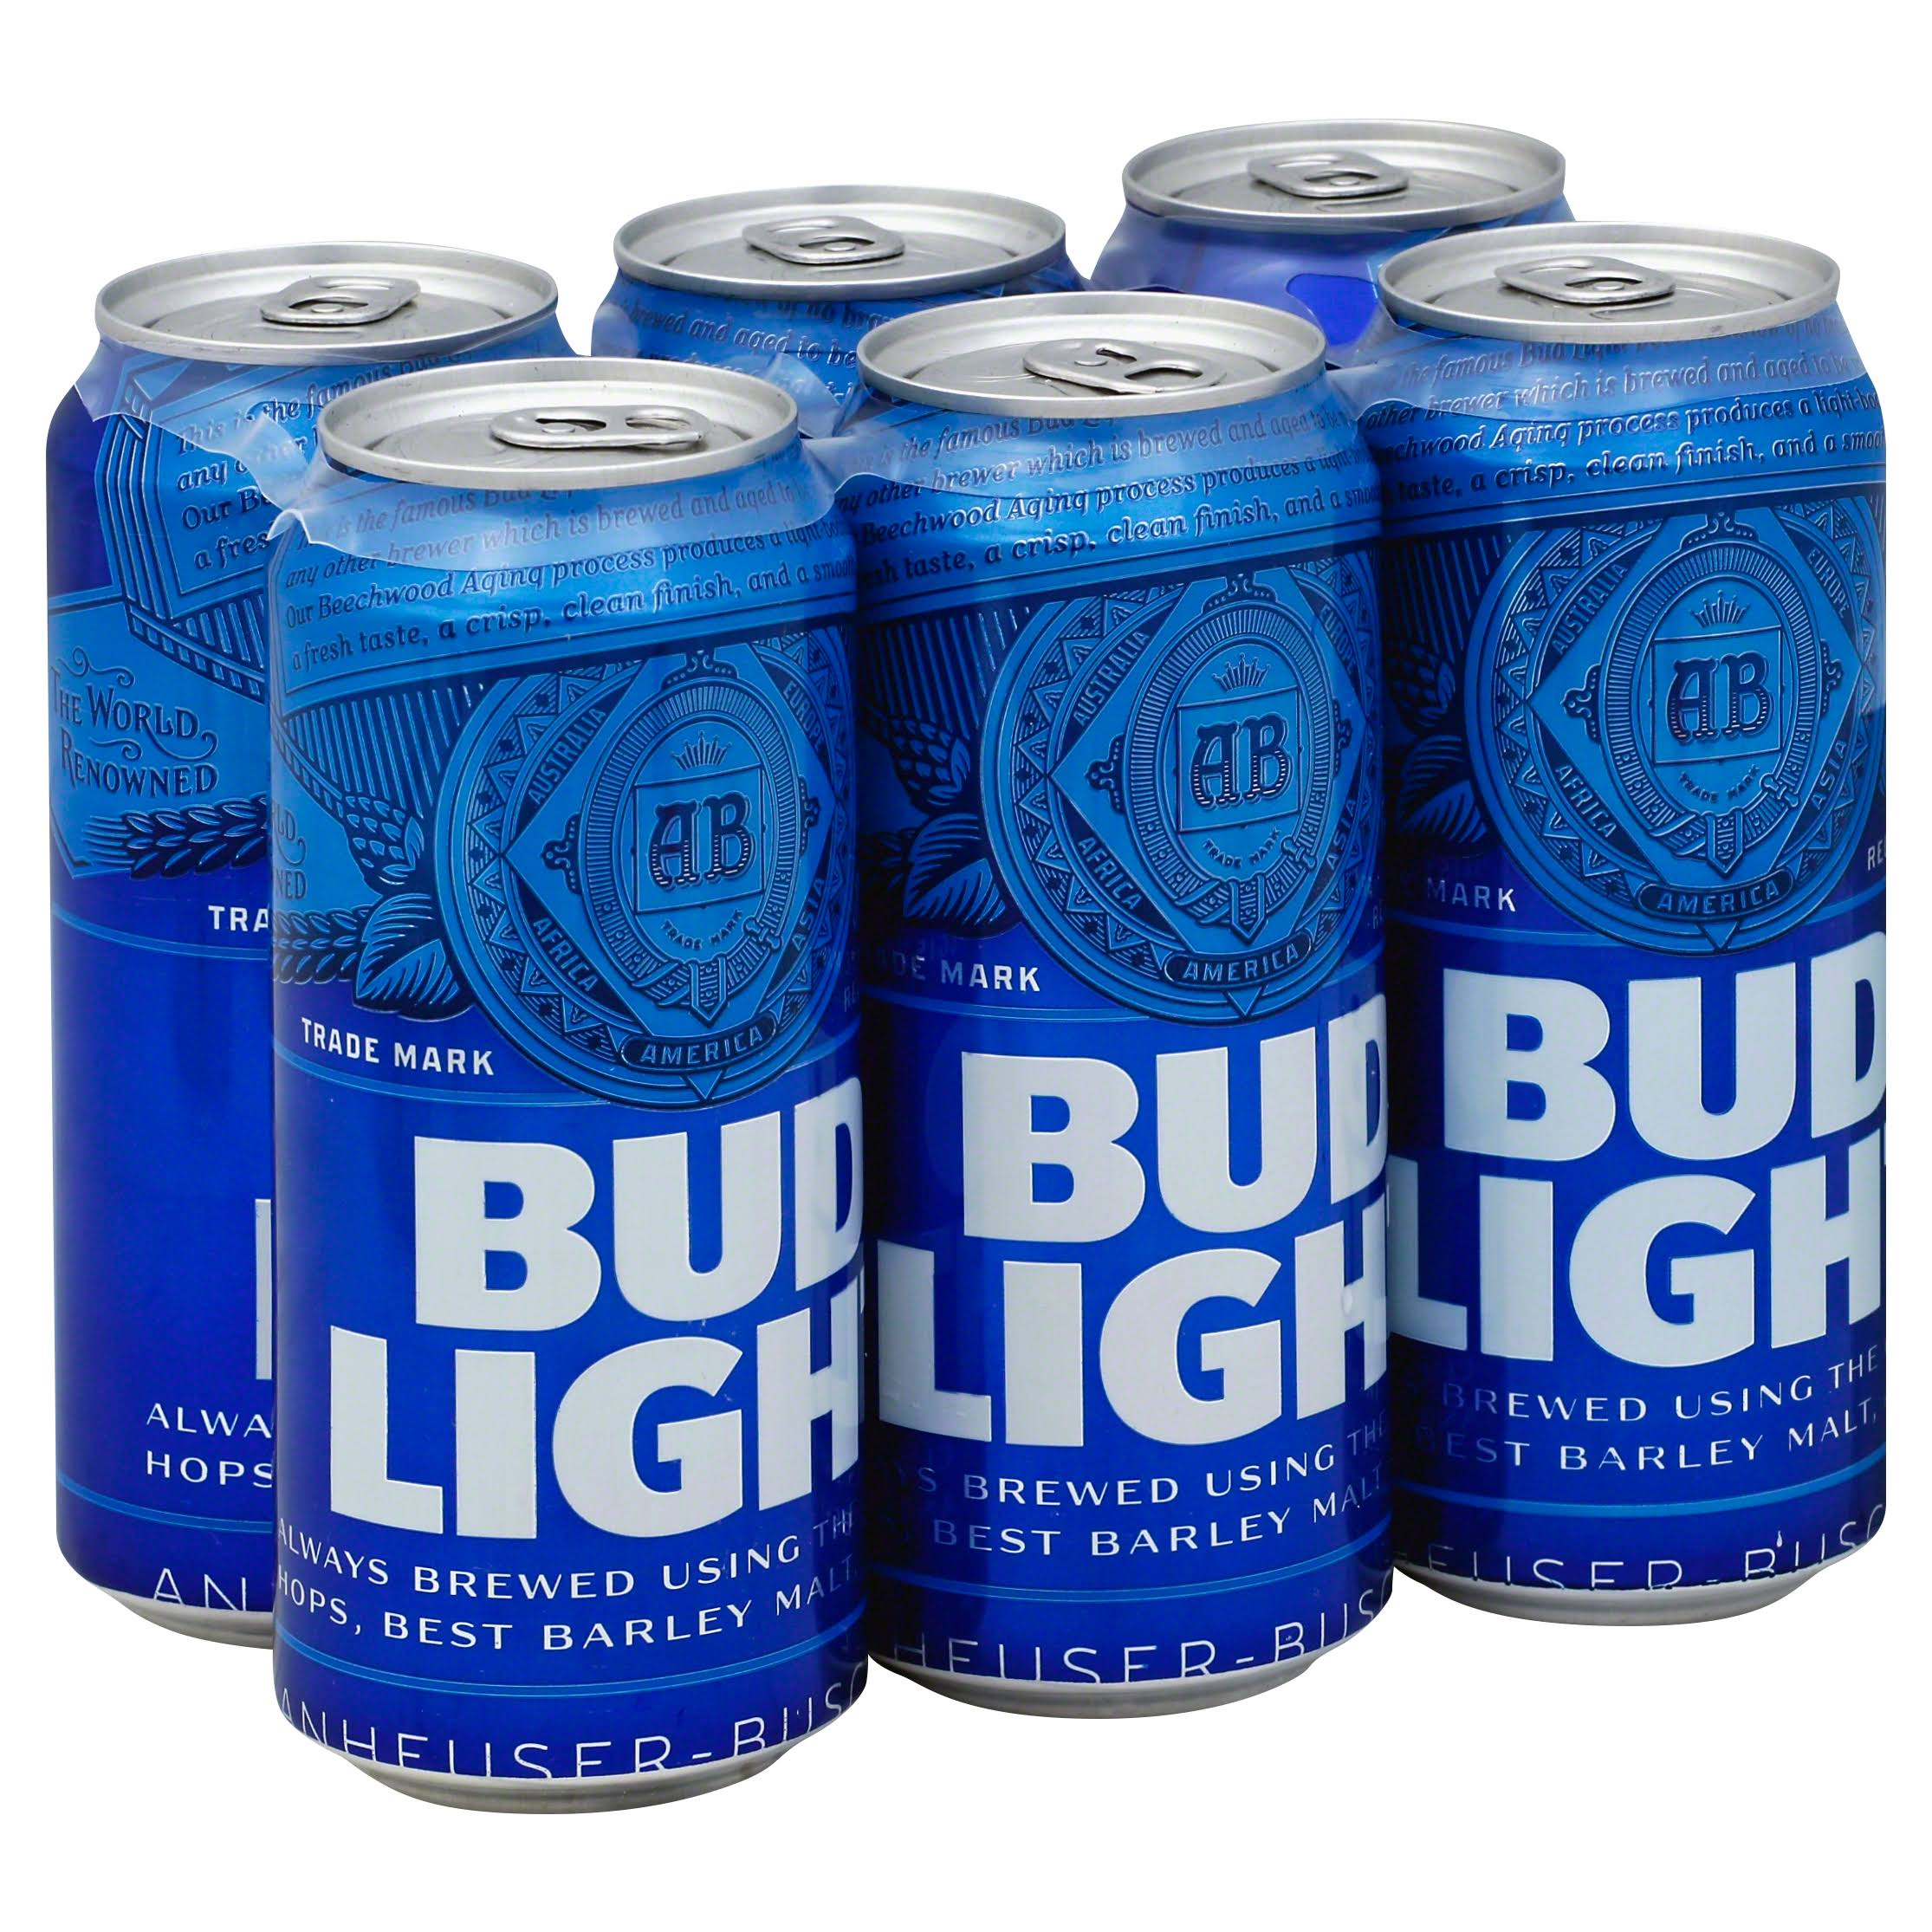 Bud Light Beer, Lager - 6 pack, 16 fl oz cans